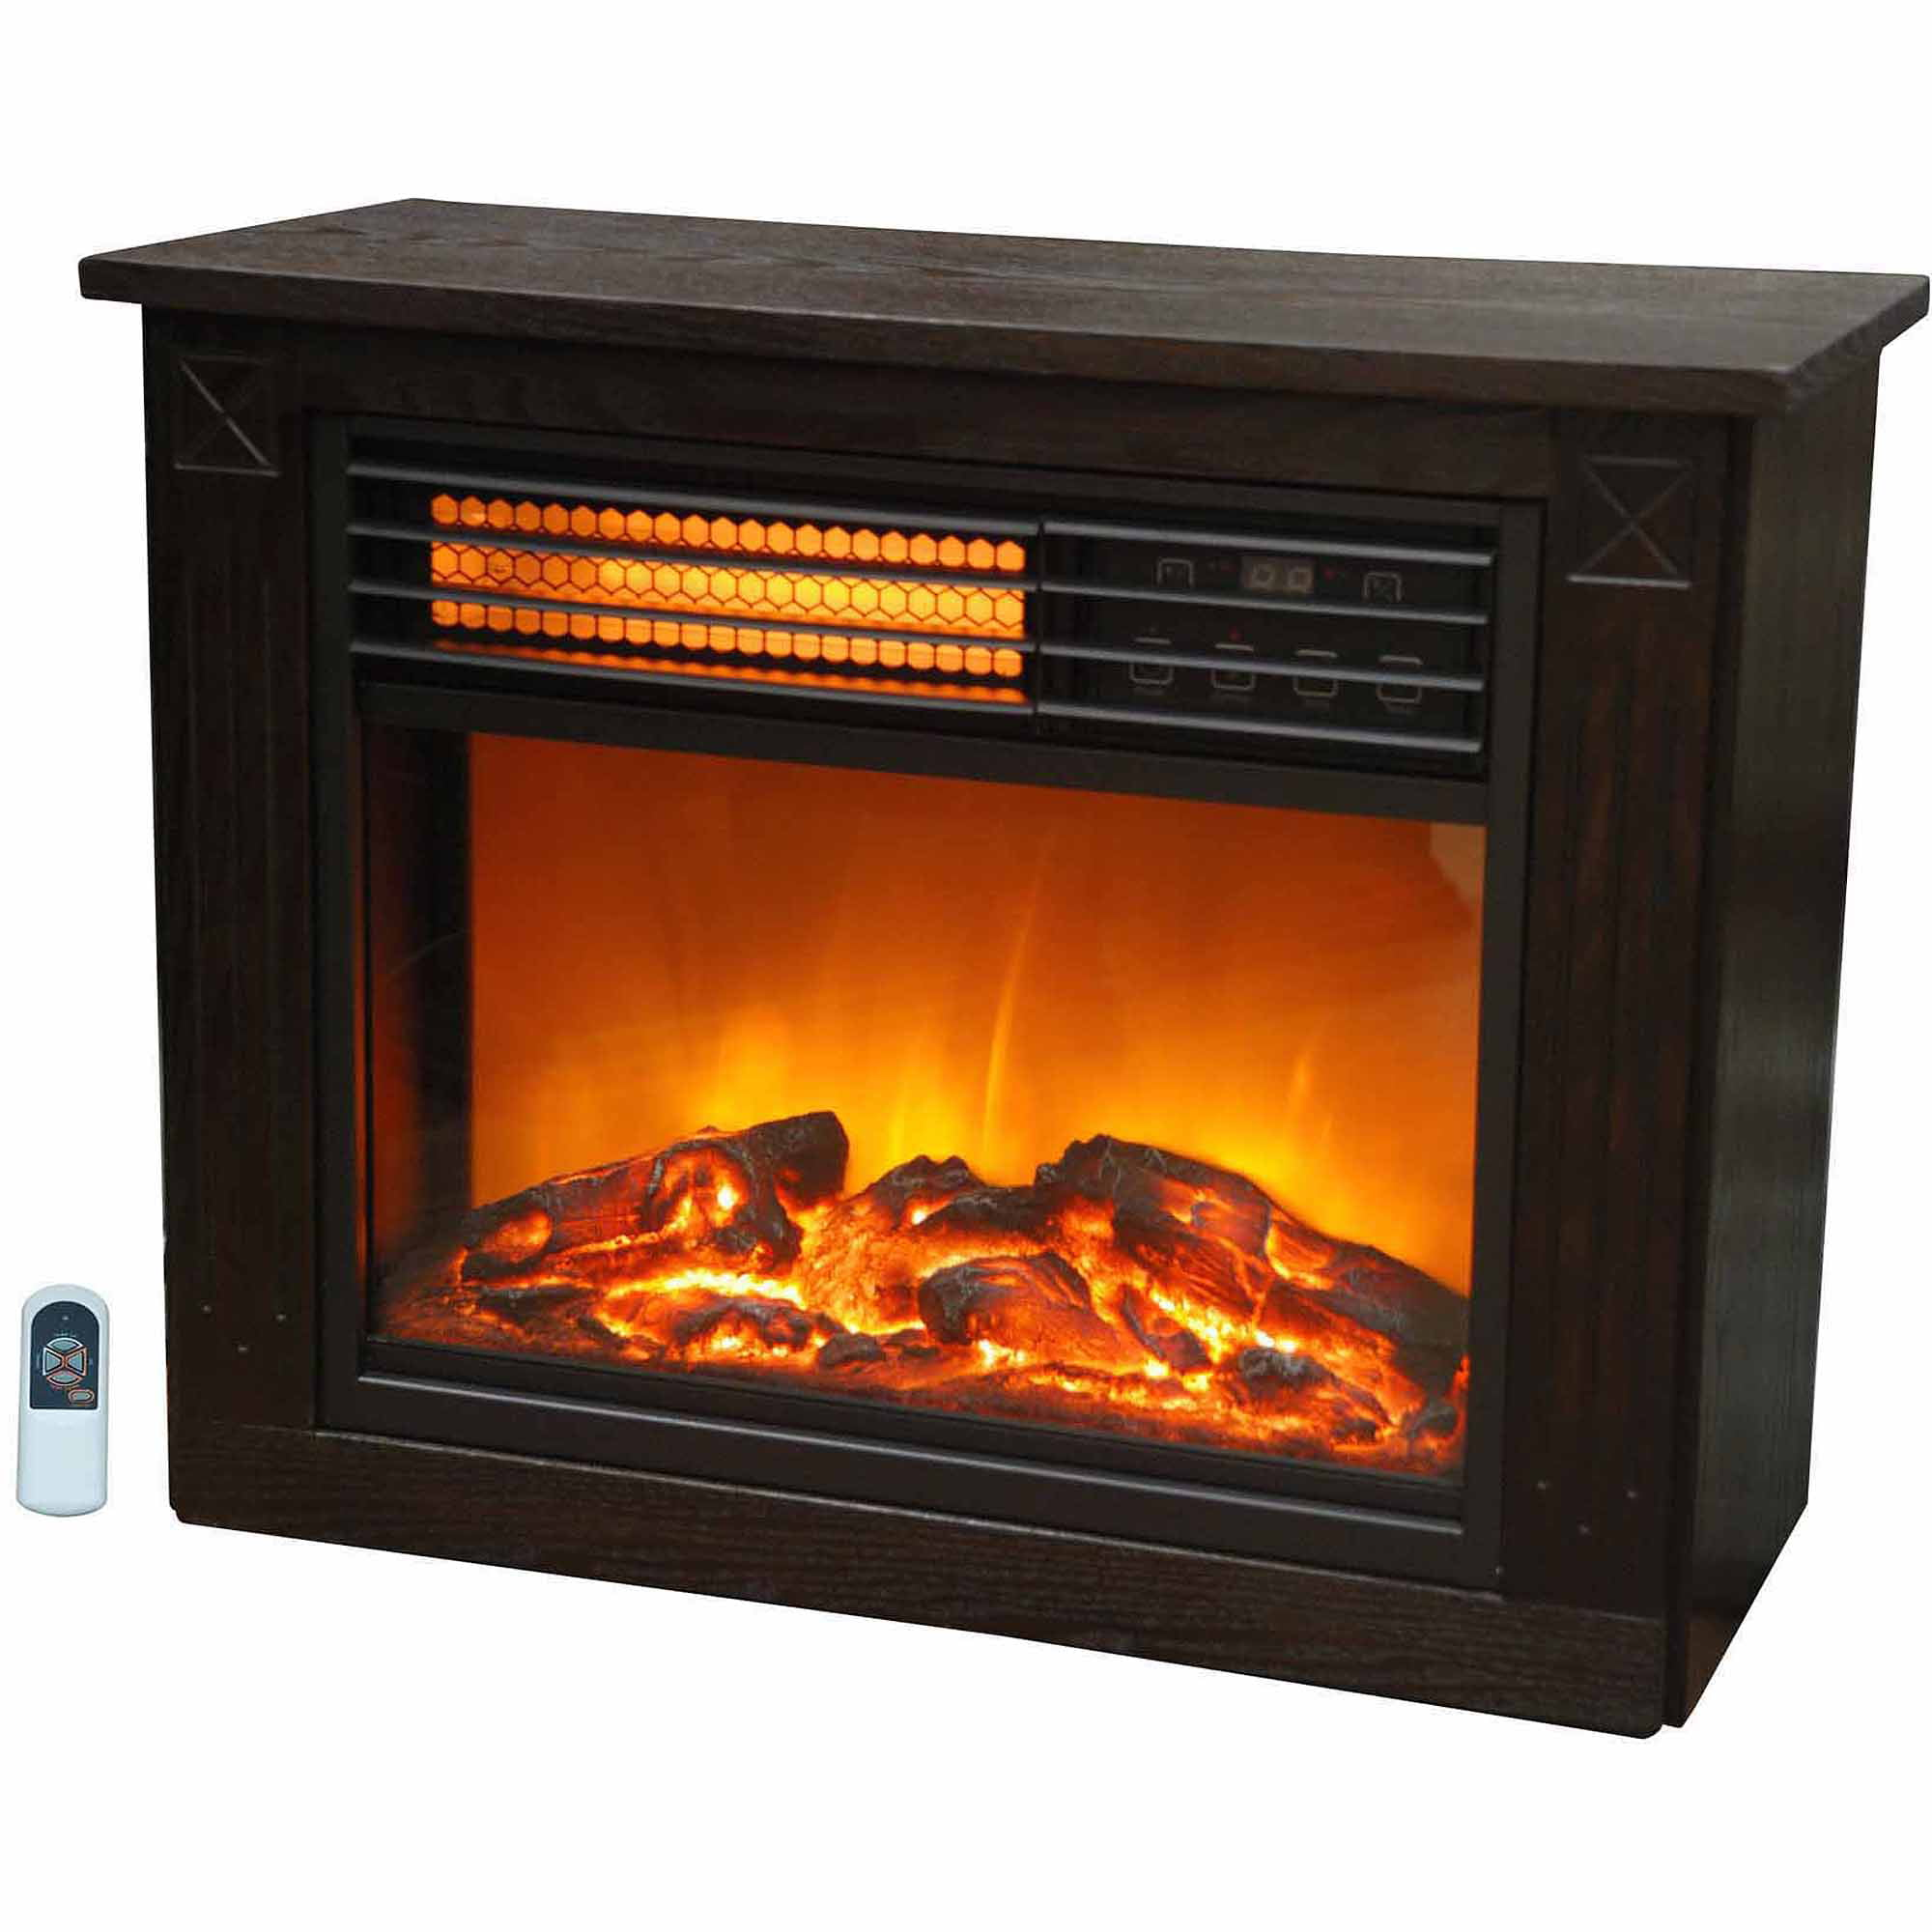 lifezone compact infrared fireplace with heater function sgh 2001frp13 walmart